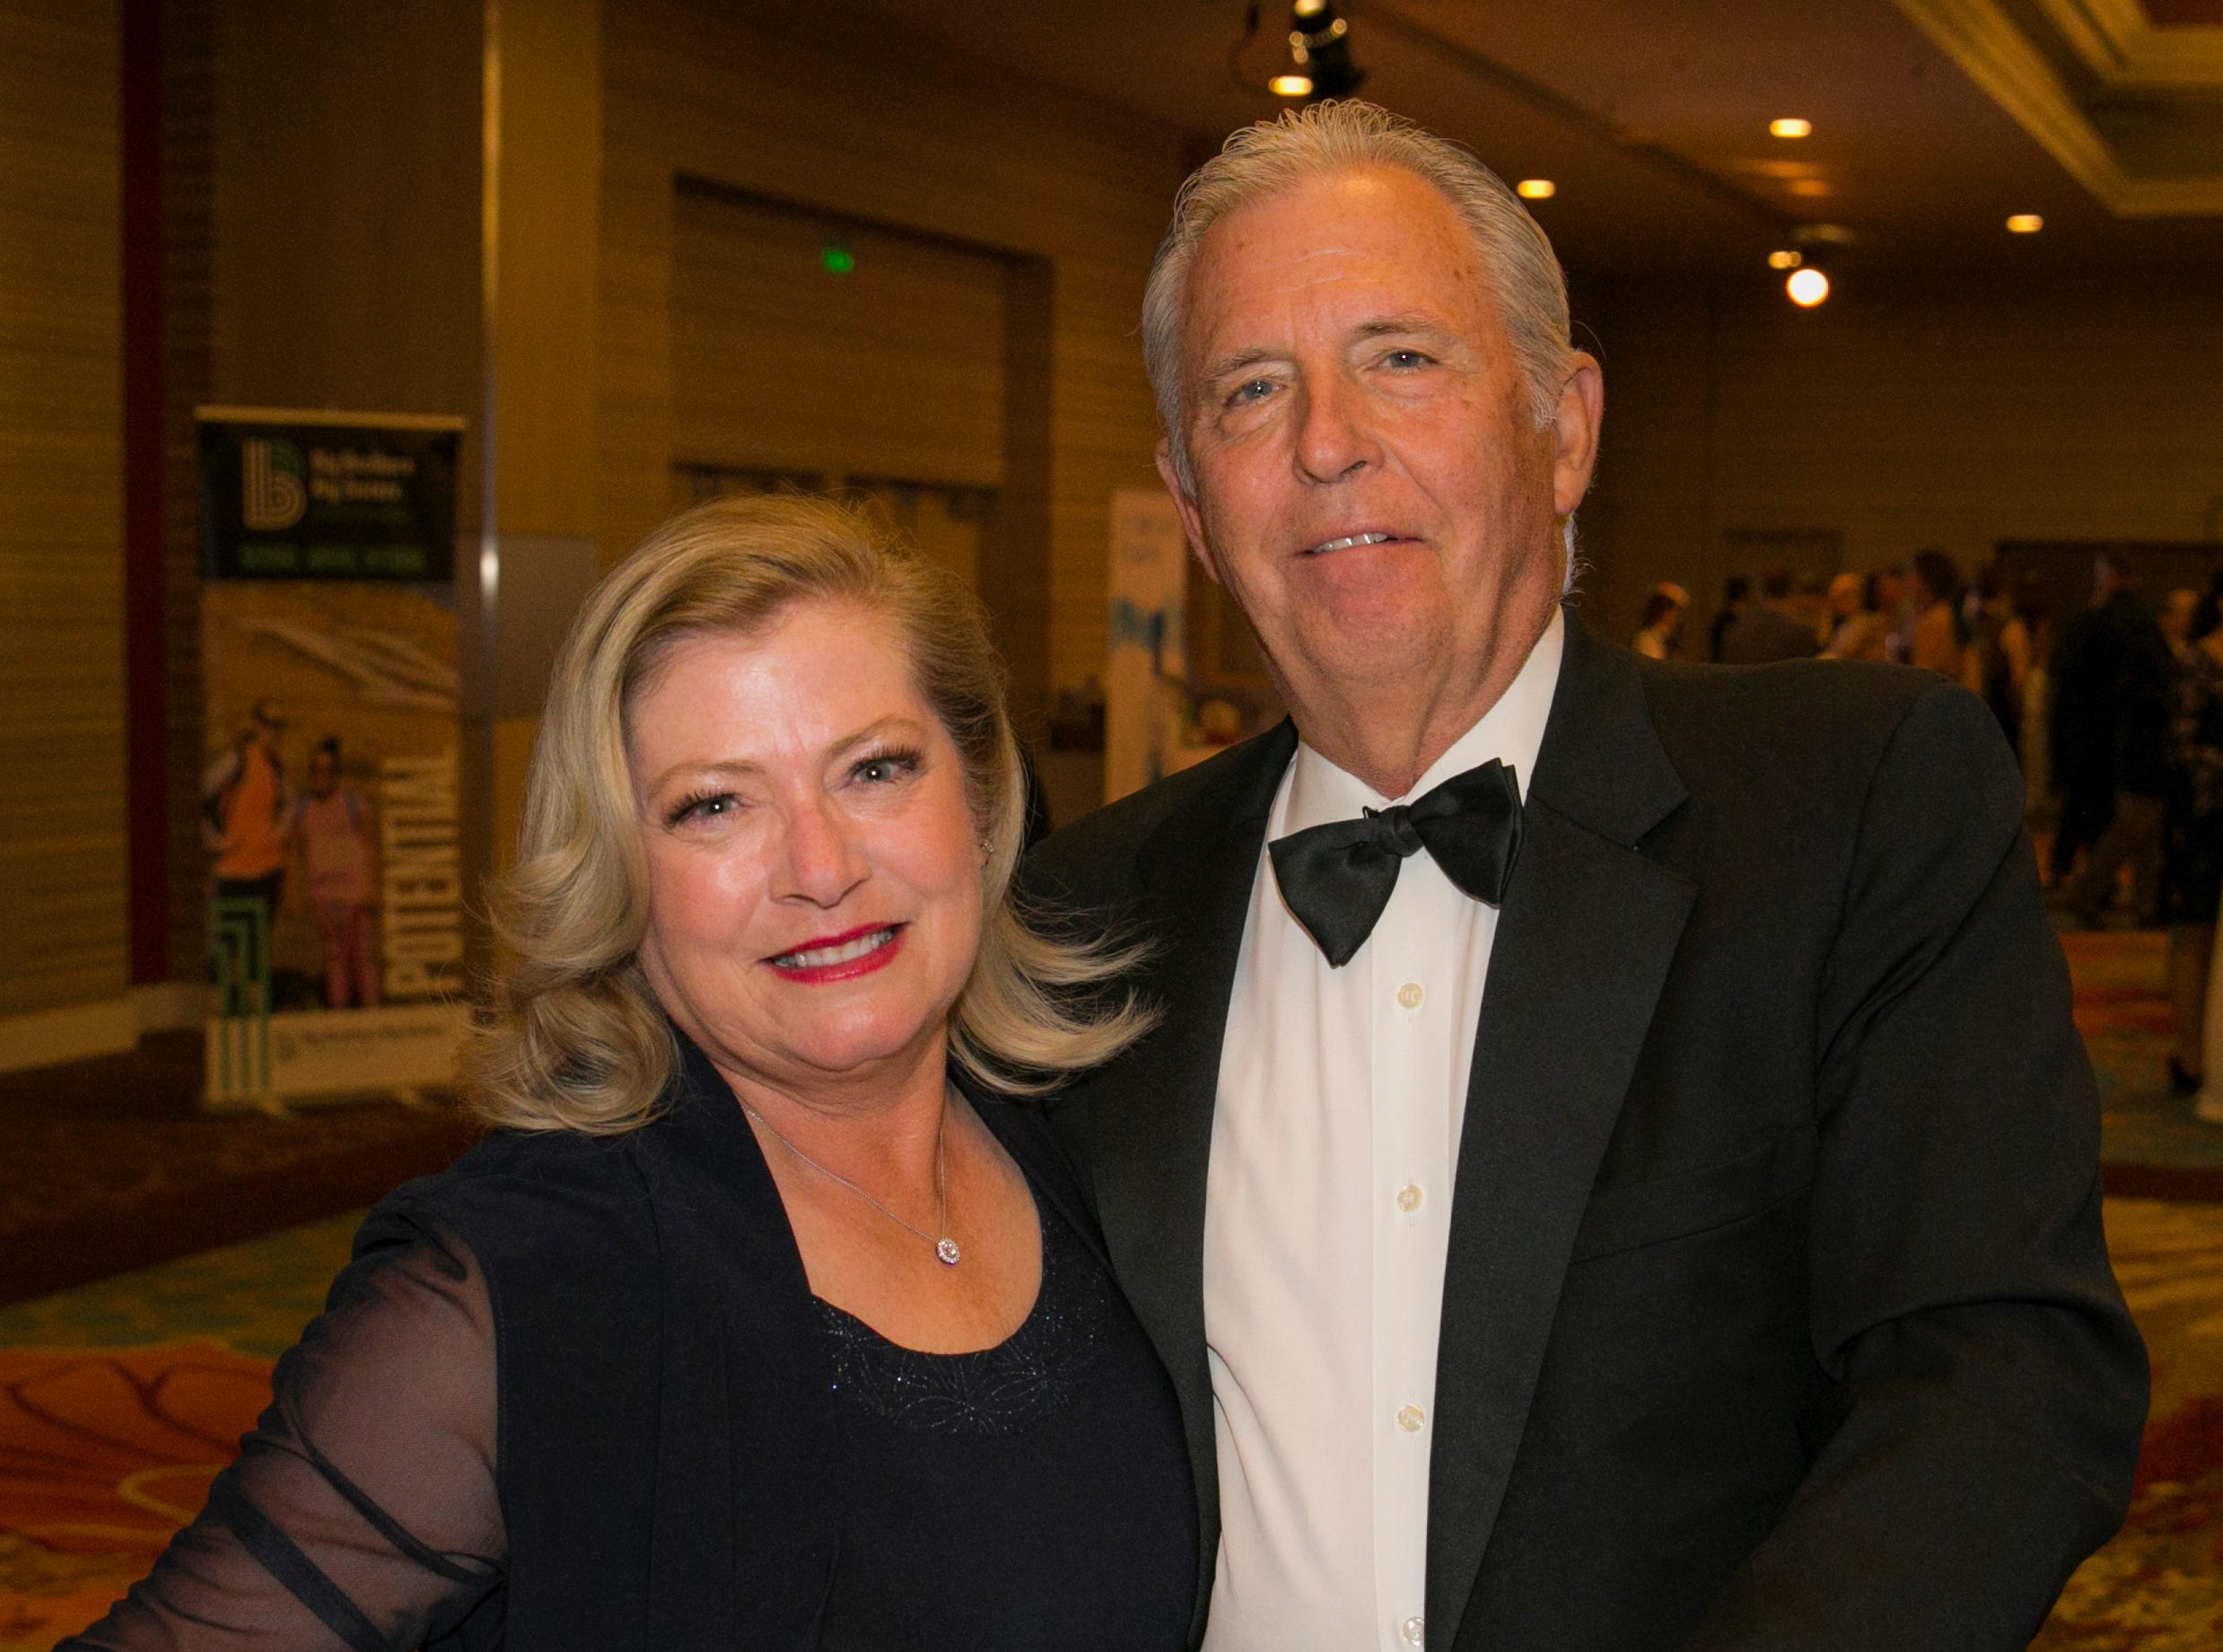 Liza and Bill Maupin during Big Chefs Big Gala at the Grand Sierra Resort in Reno, Nevada on Saturday, April 13, 2019.